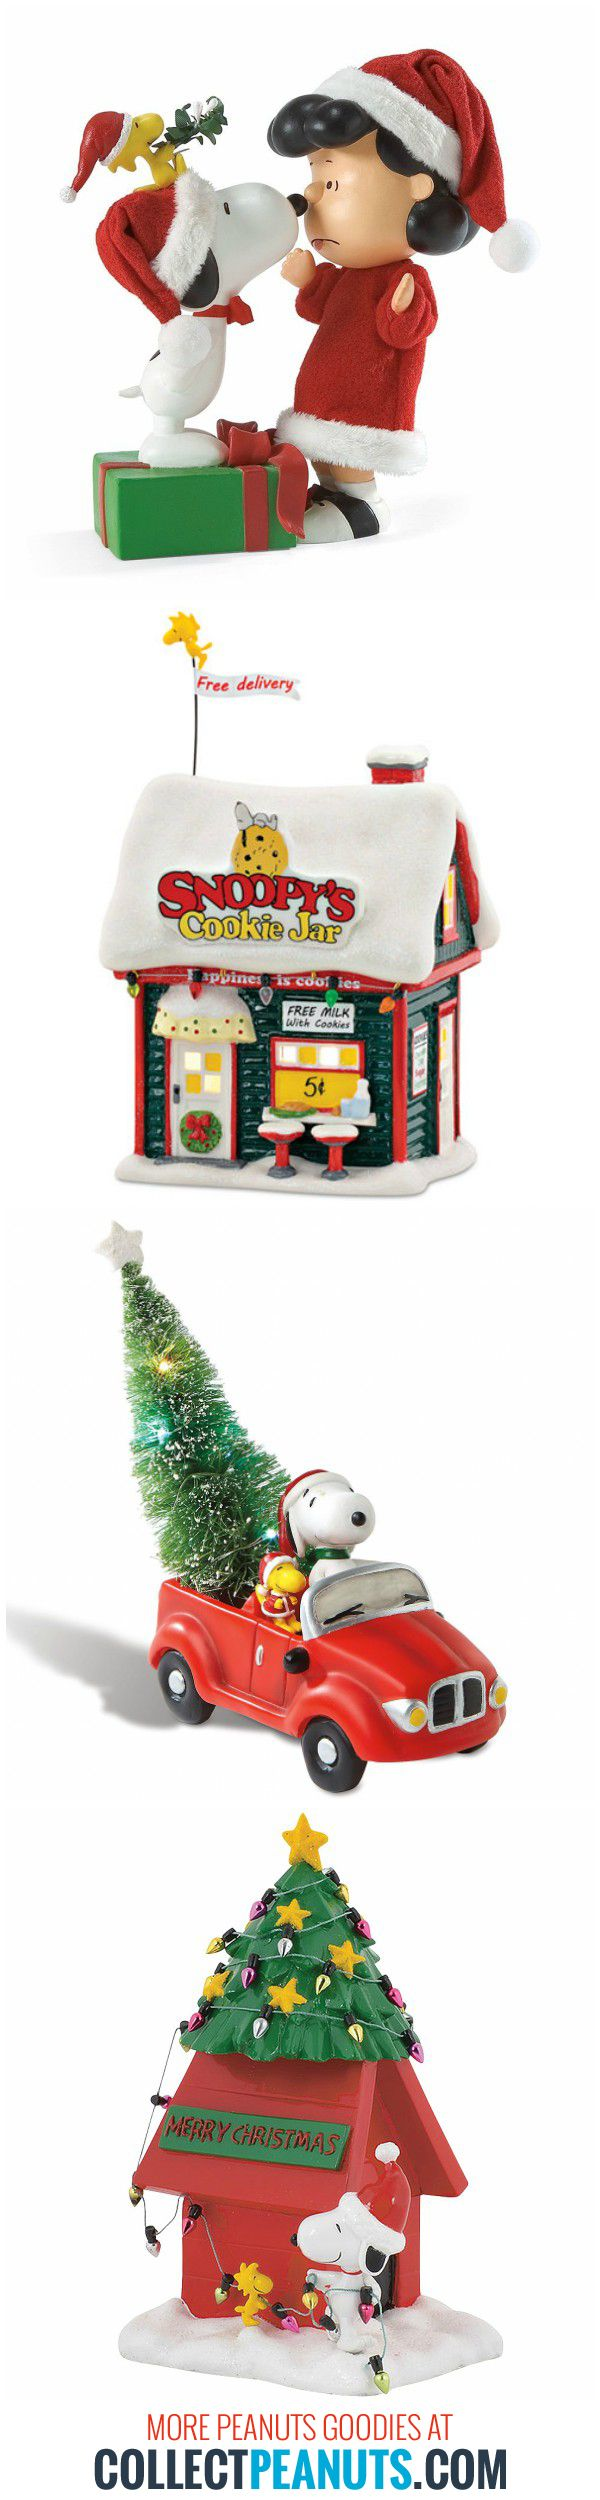 Are you dreaming of a Peanuts Christmas? Find Christmas goodies to decorate your home and spread the Snoopy Christmas cheer! Get started at CollectPeanuts.com.